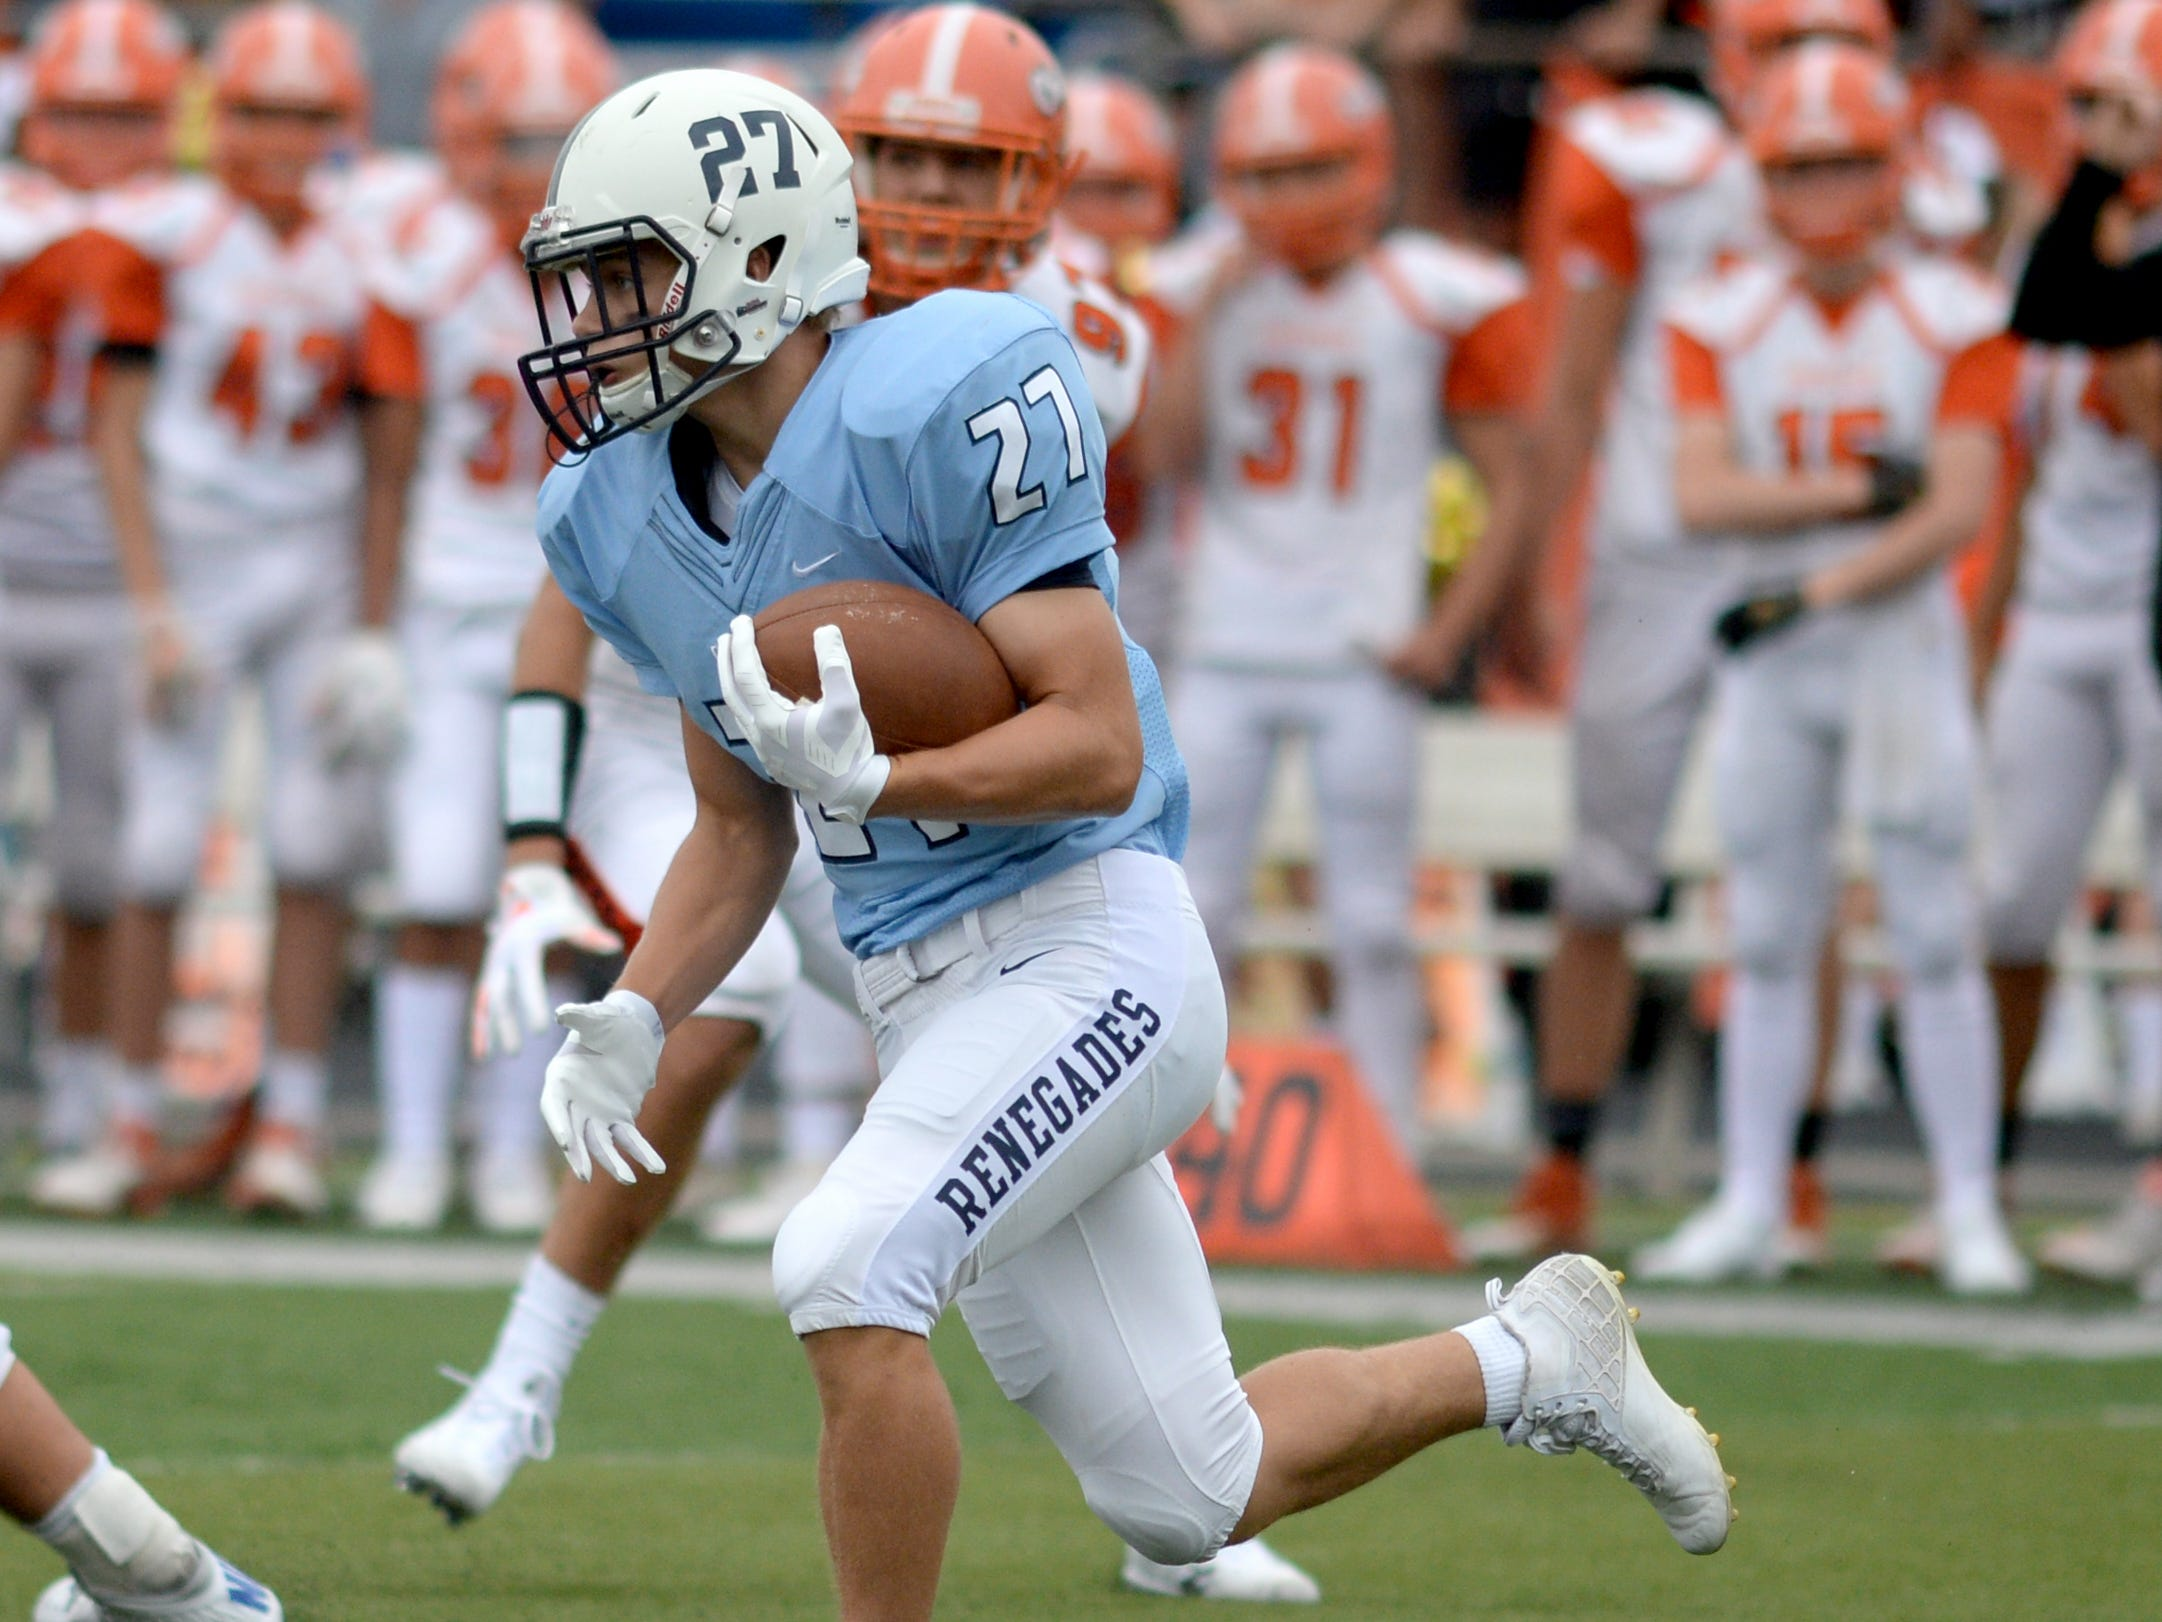 Shawnee's Tom Rebstock carries the ball during Saturday's football game against Cherokee at Shawnee High School,  Sept. 8, 2018.